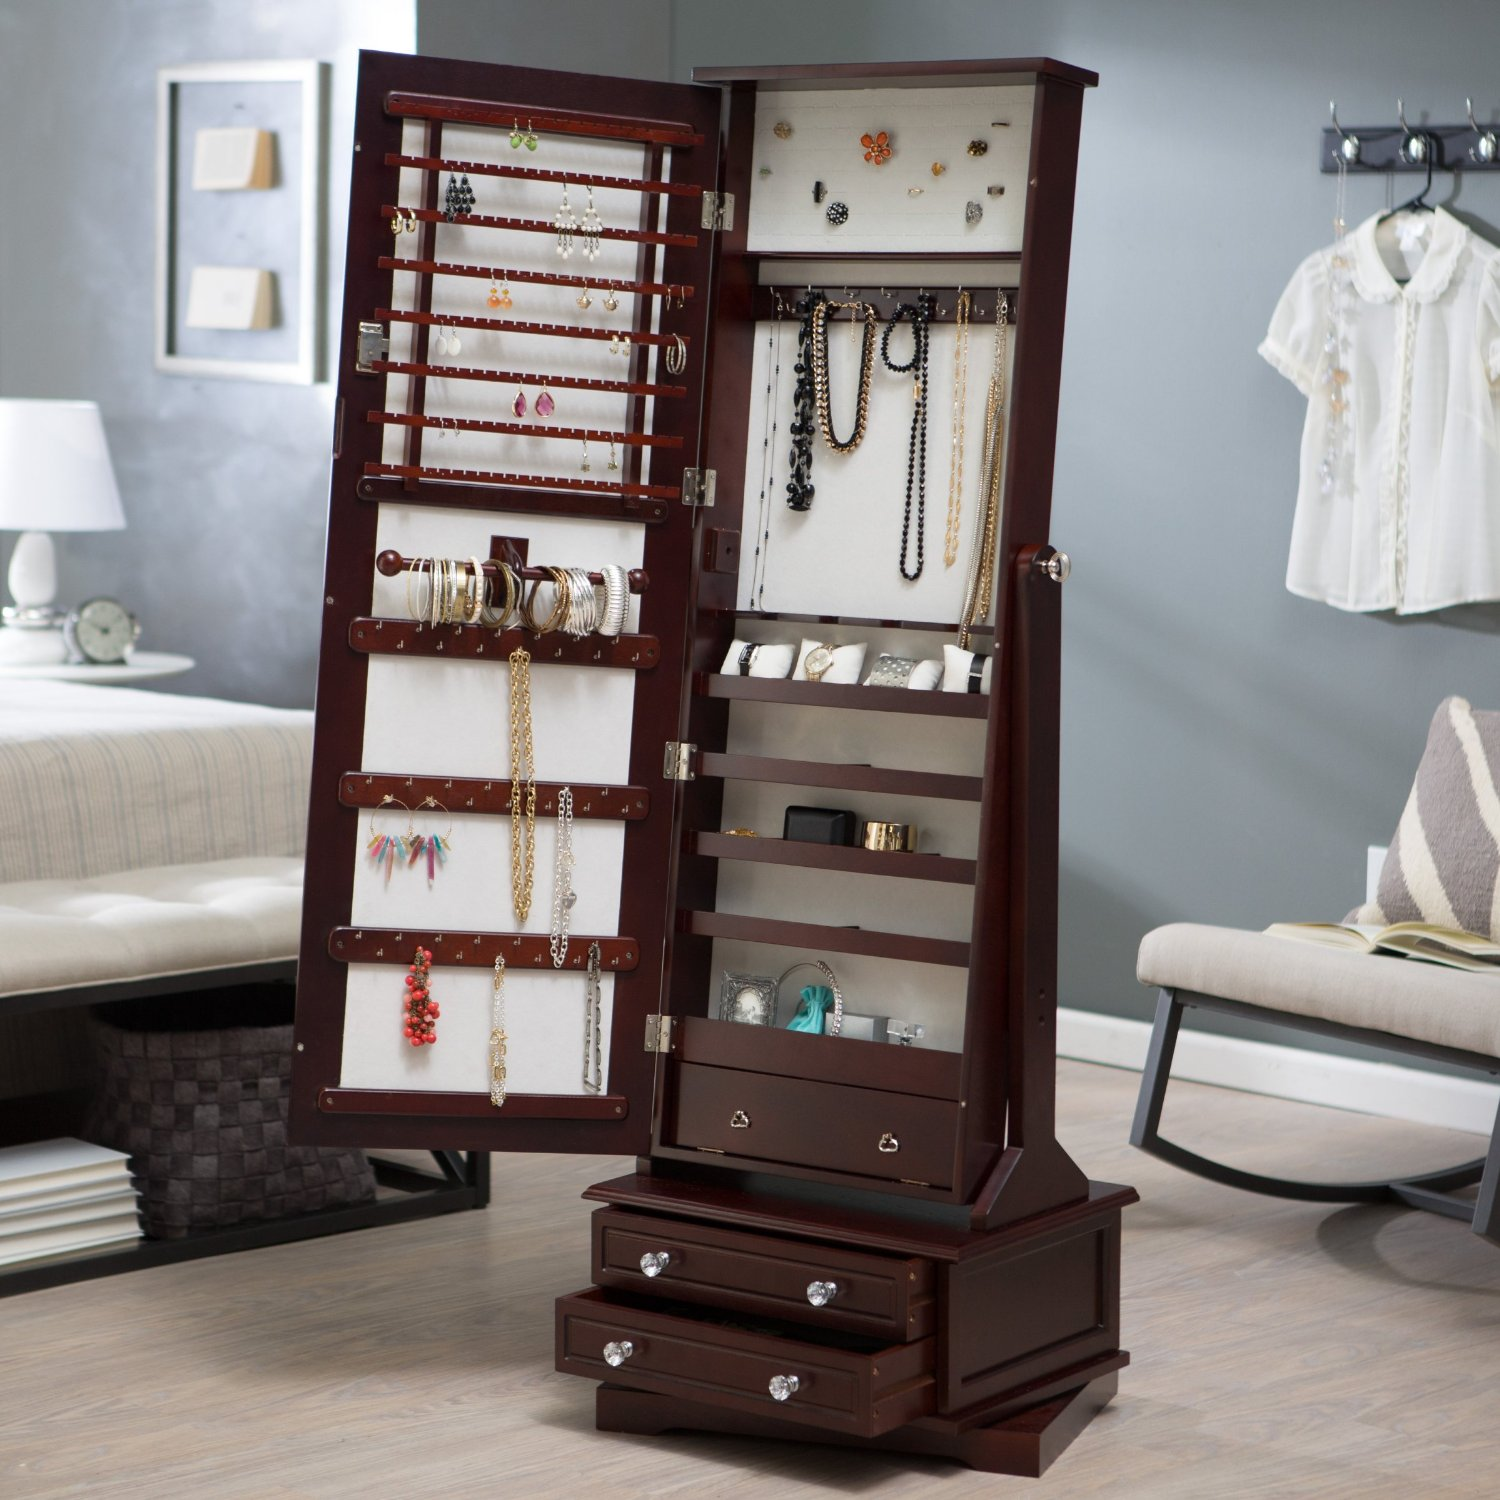 beautiful wooden standing mirror jewelry armoire in dark brown on wooden floor with gray wall for bedroom decor ideas